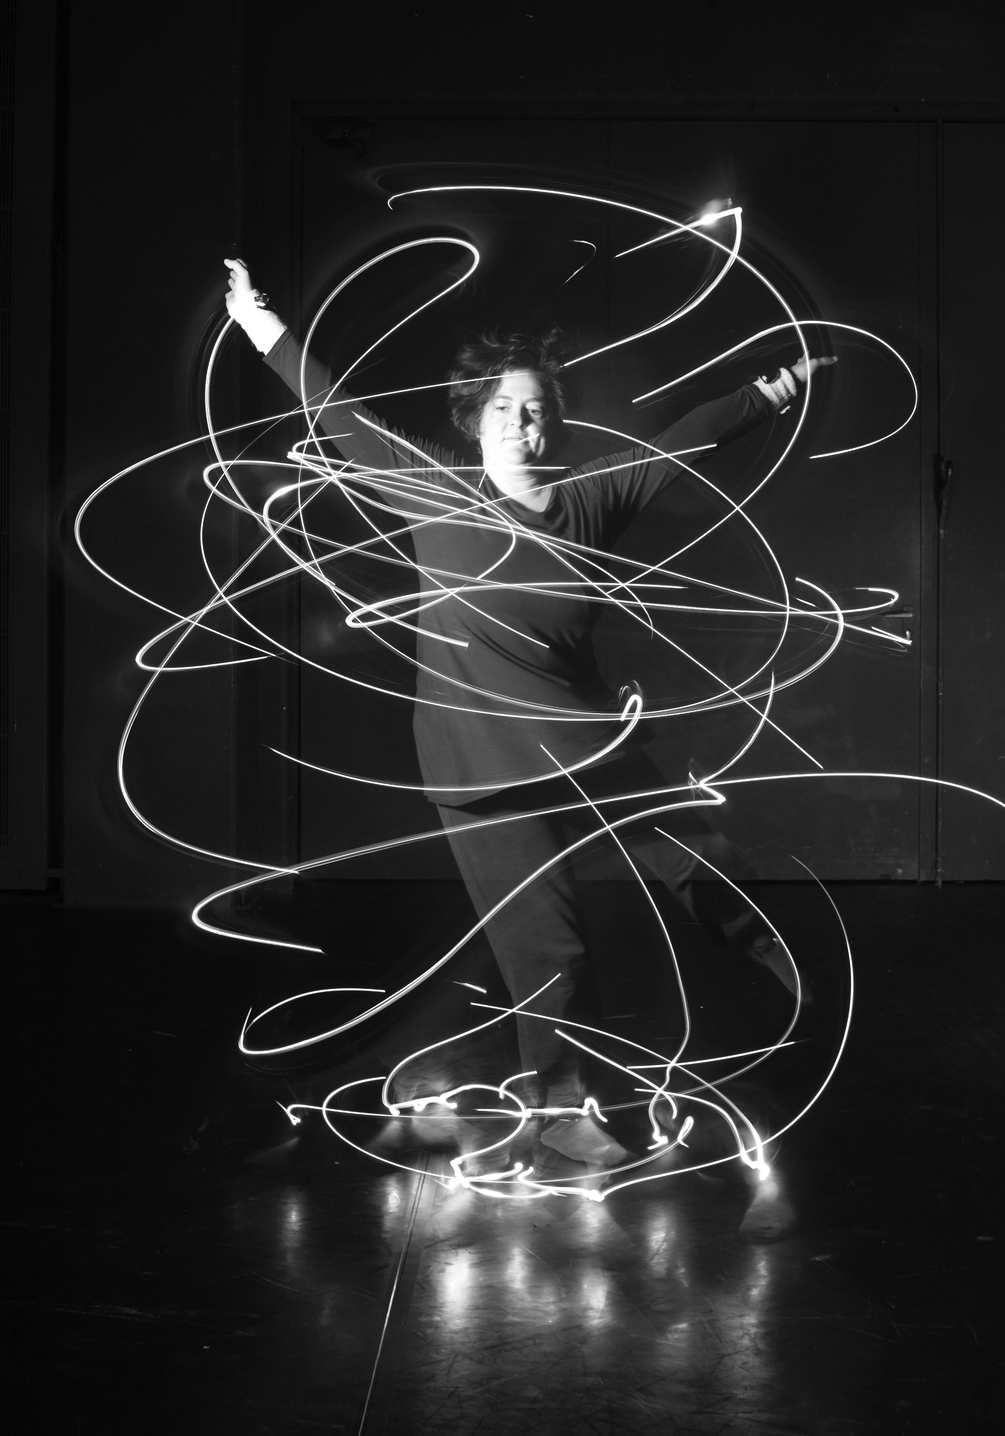 tracking-dance-mounted-miniature-lightbulb-in-motion-1005x1435px